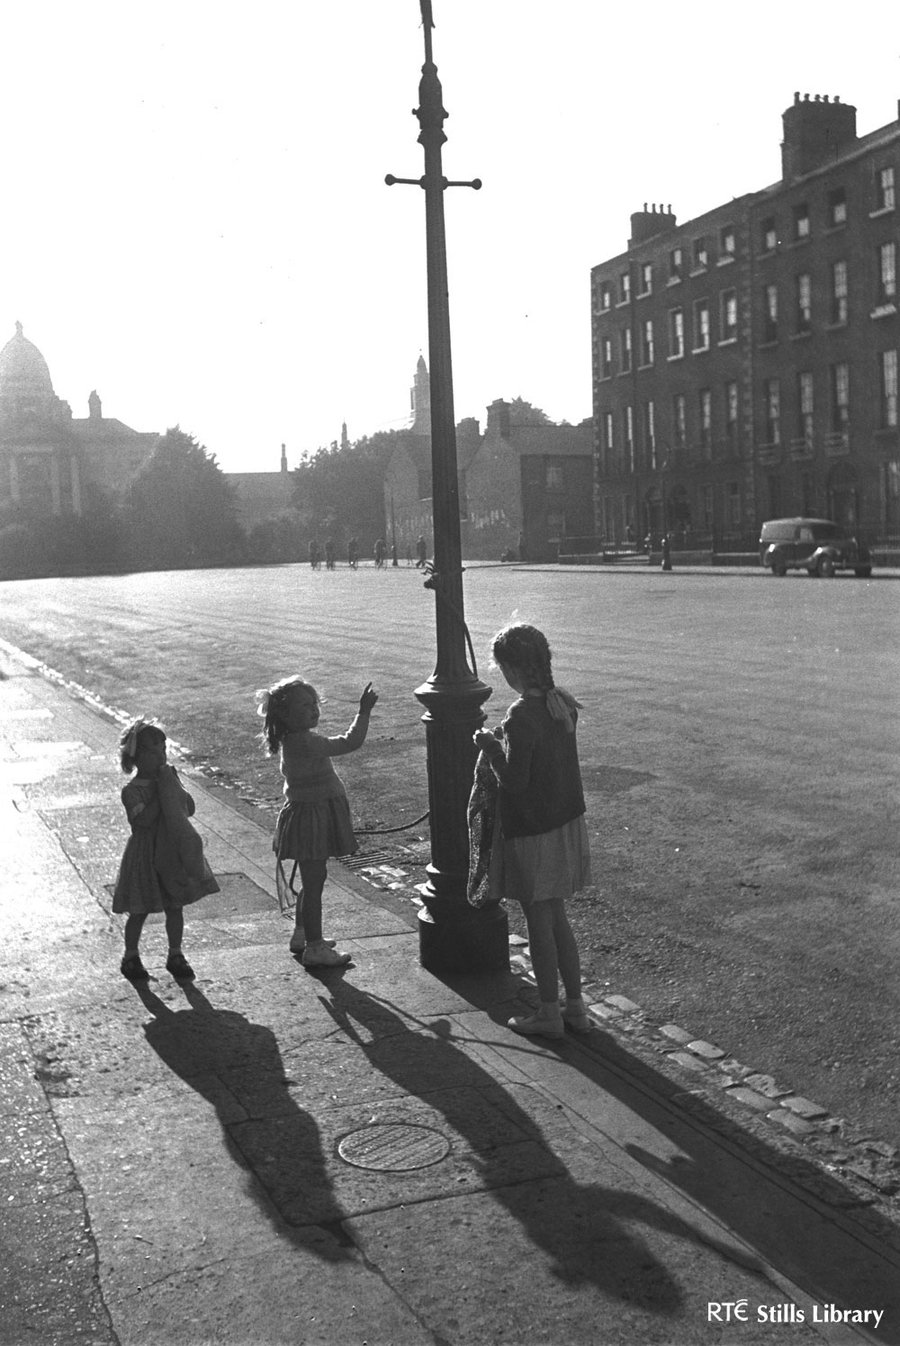 Children Playing on Lamp Post 3011/088